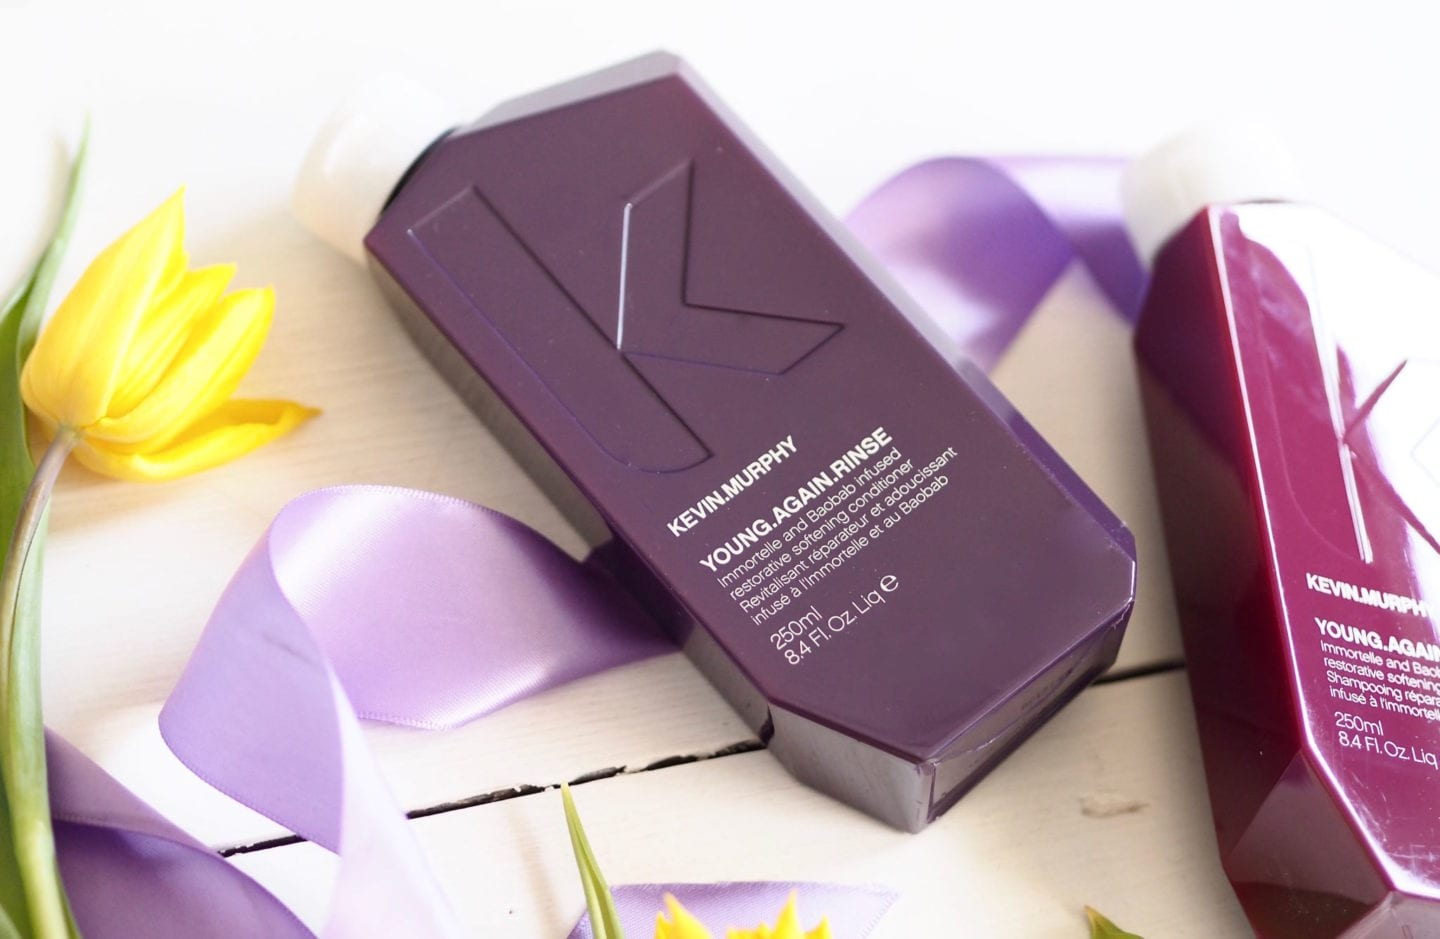 Kevin Murphy Hair Care.